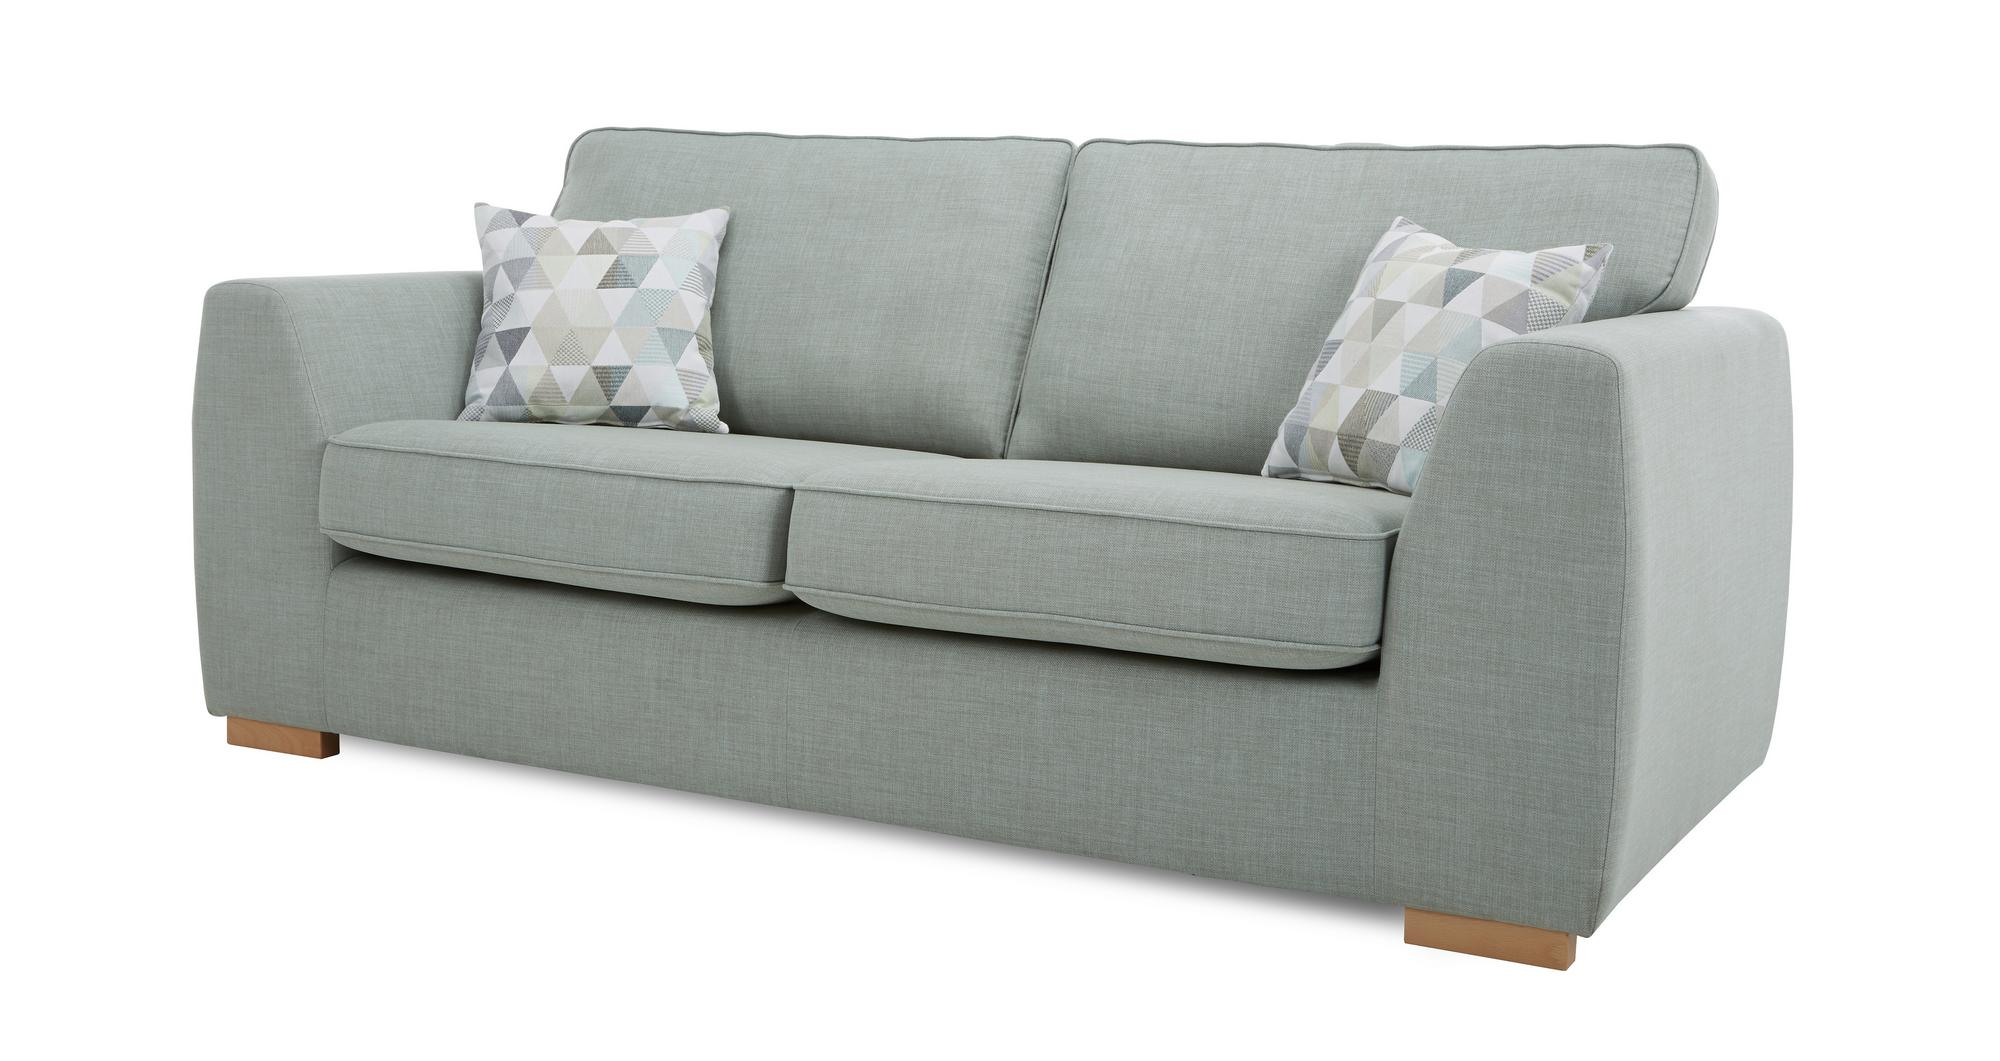 Dfs Vale Fabric 3 Seater 2 Seater Sofa Bed 2 X Chairs